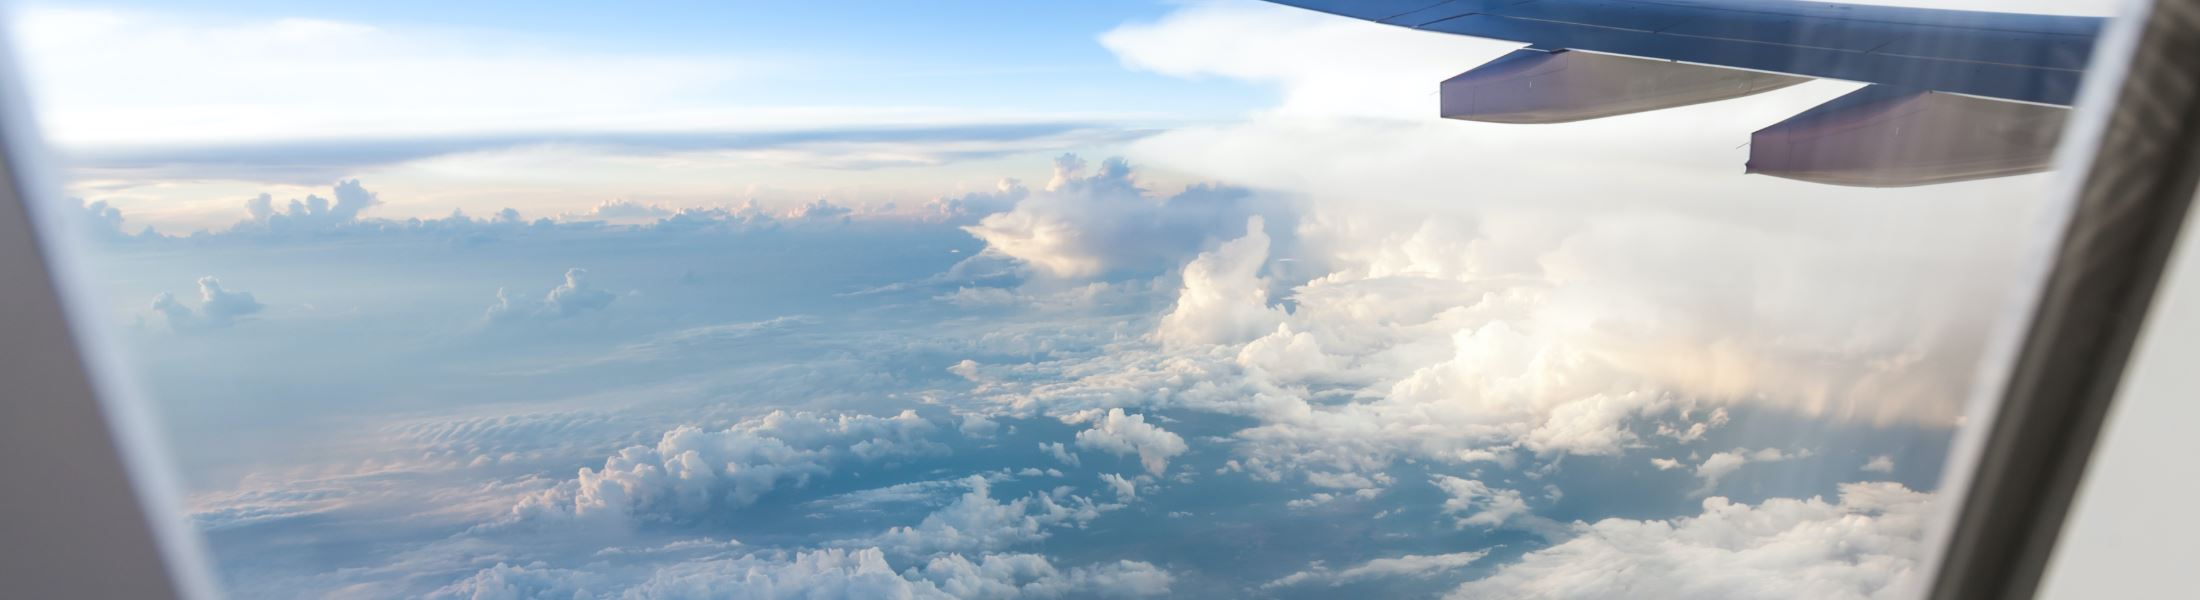 Clouds and sky as seen through a plane window